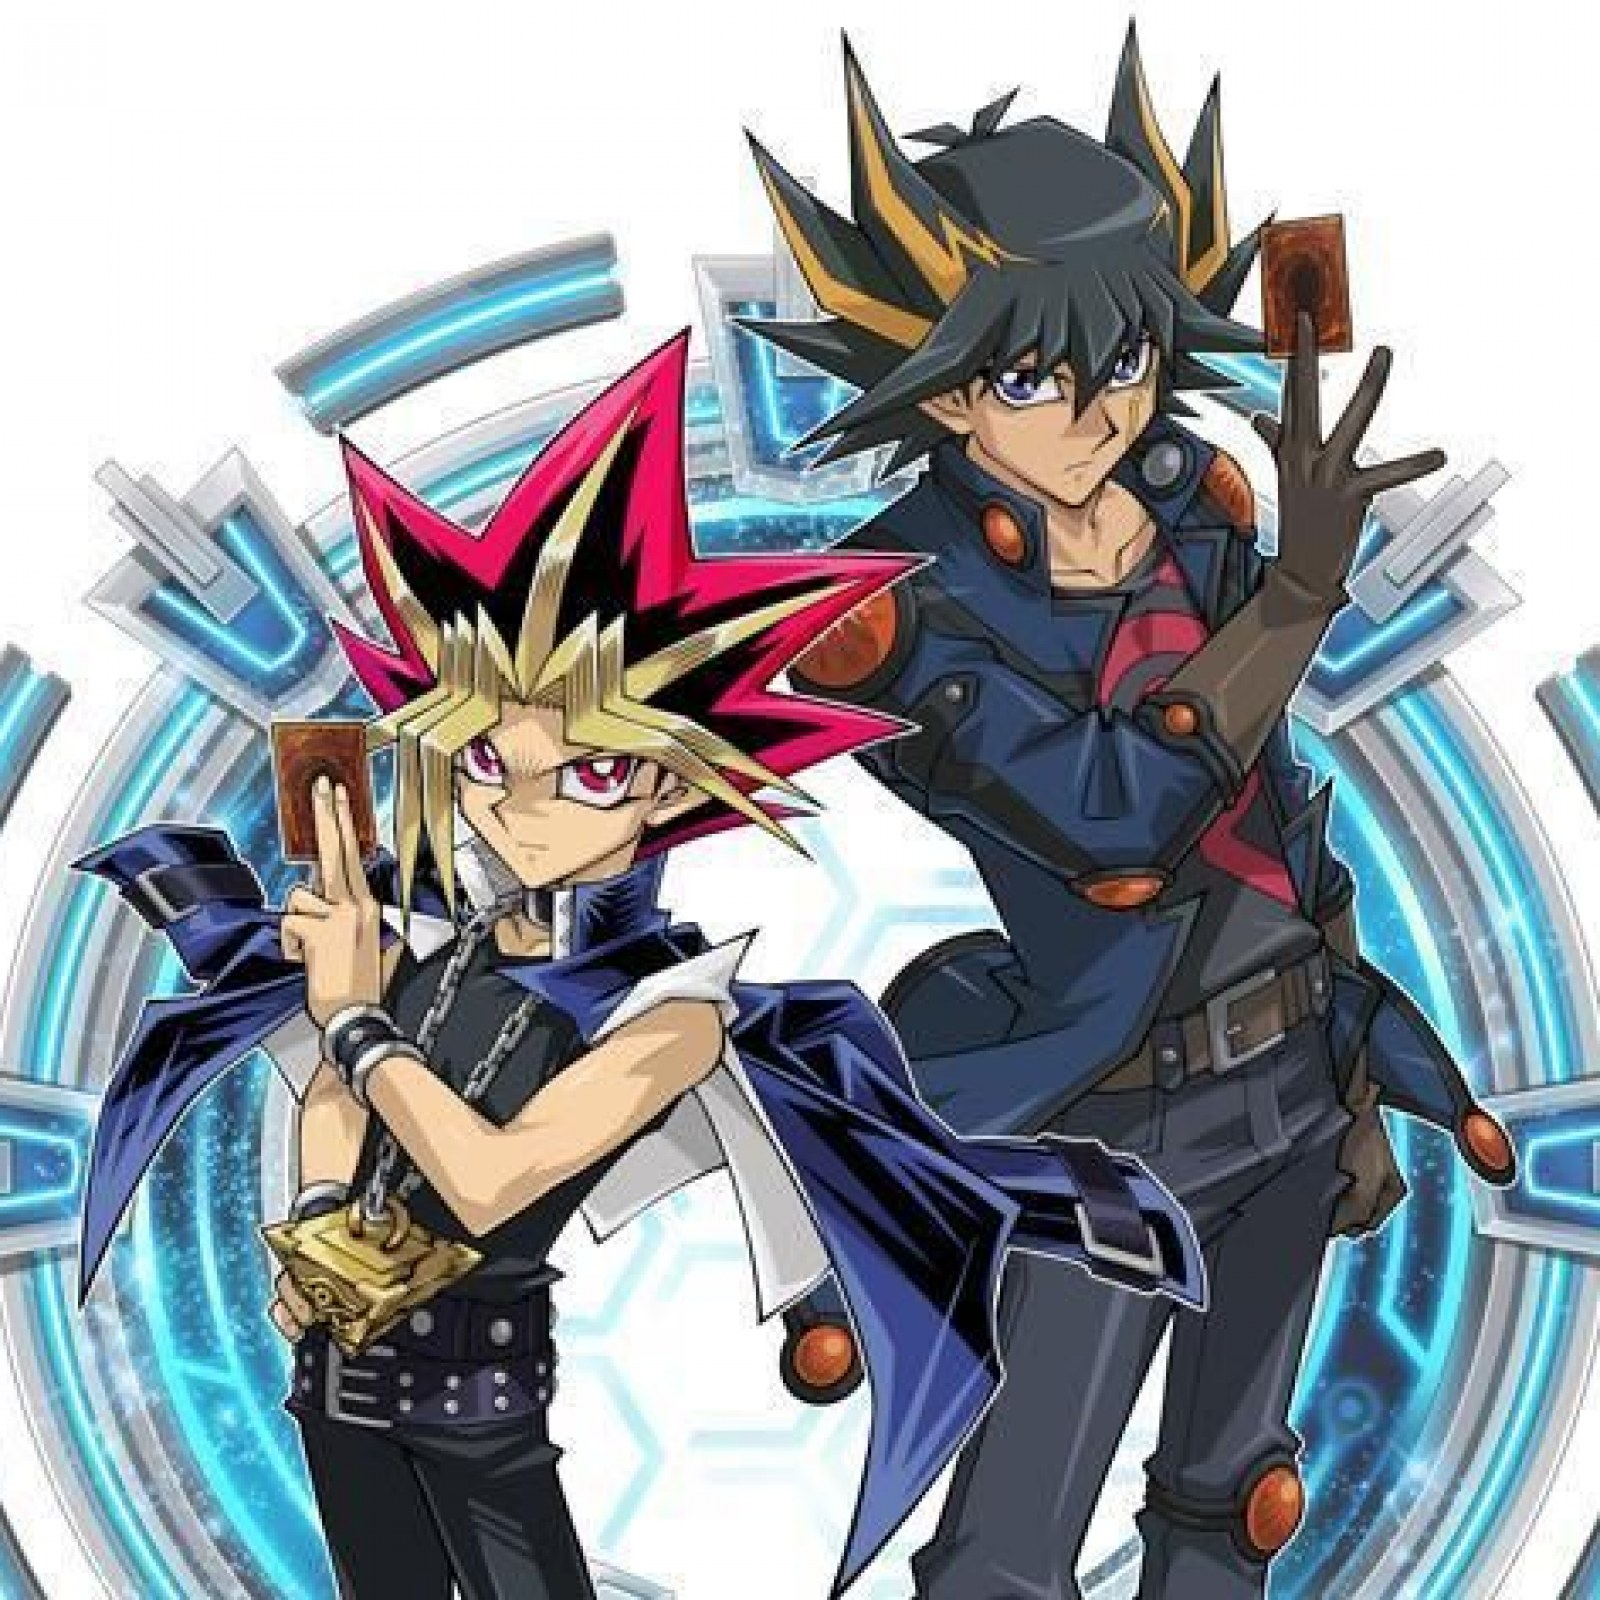 Yu-Gi-Oh! Duel Links' Duelist Challenge Solutions: How to